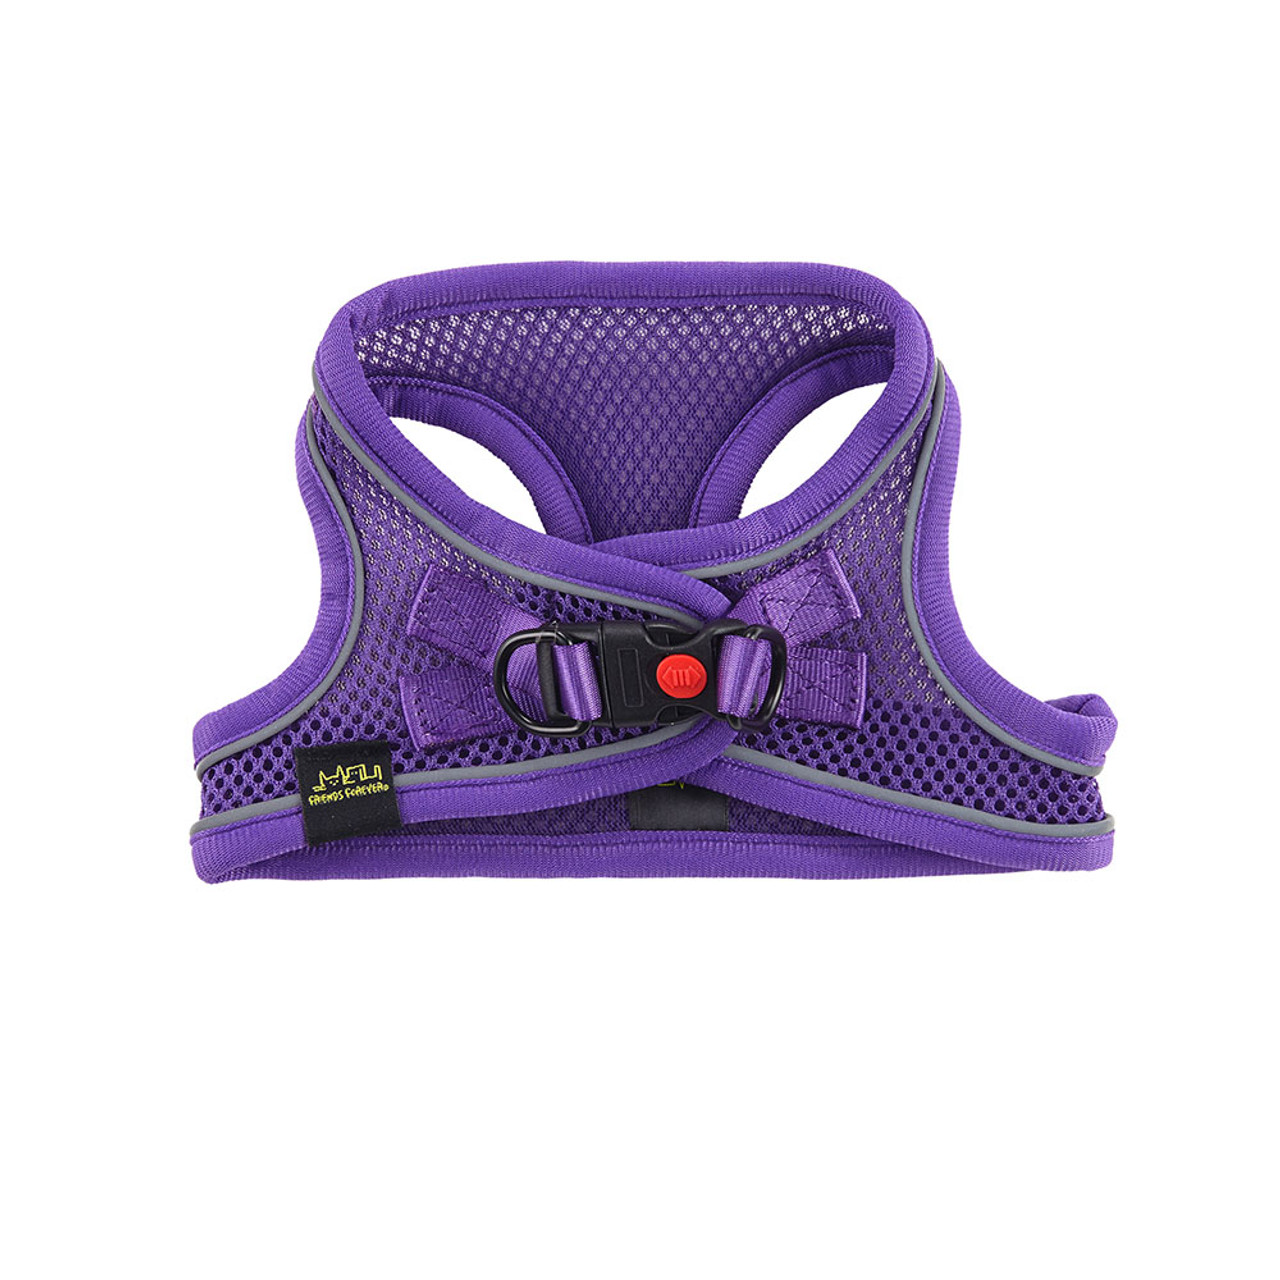 Friends Forever Mesh Reflective Dog Harness - Front